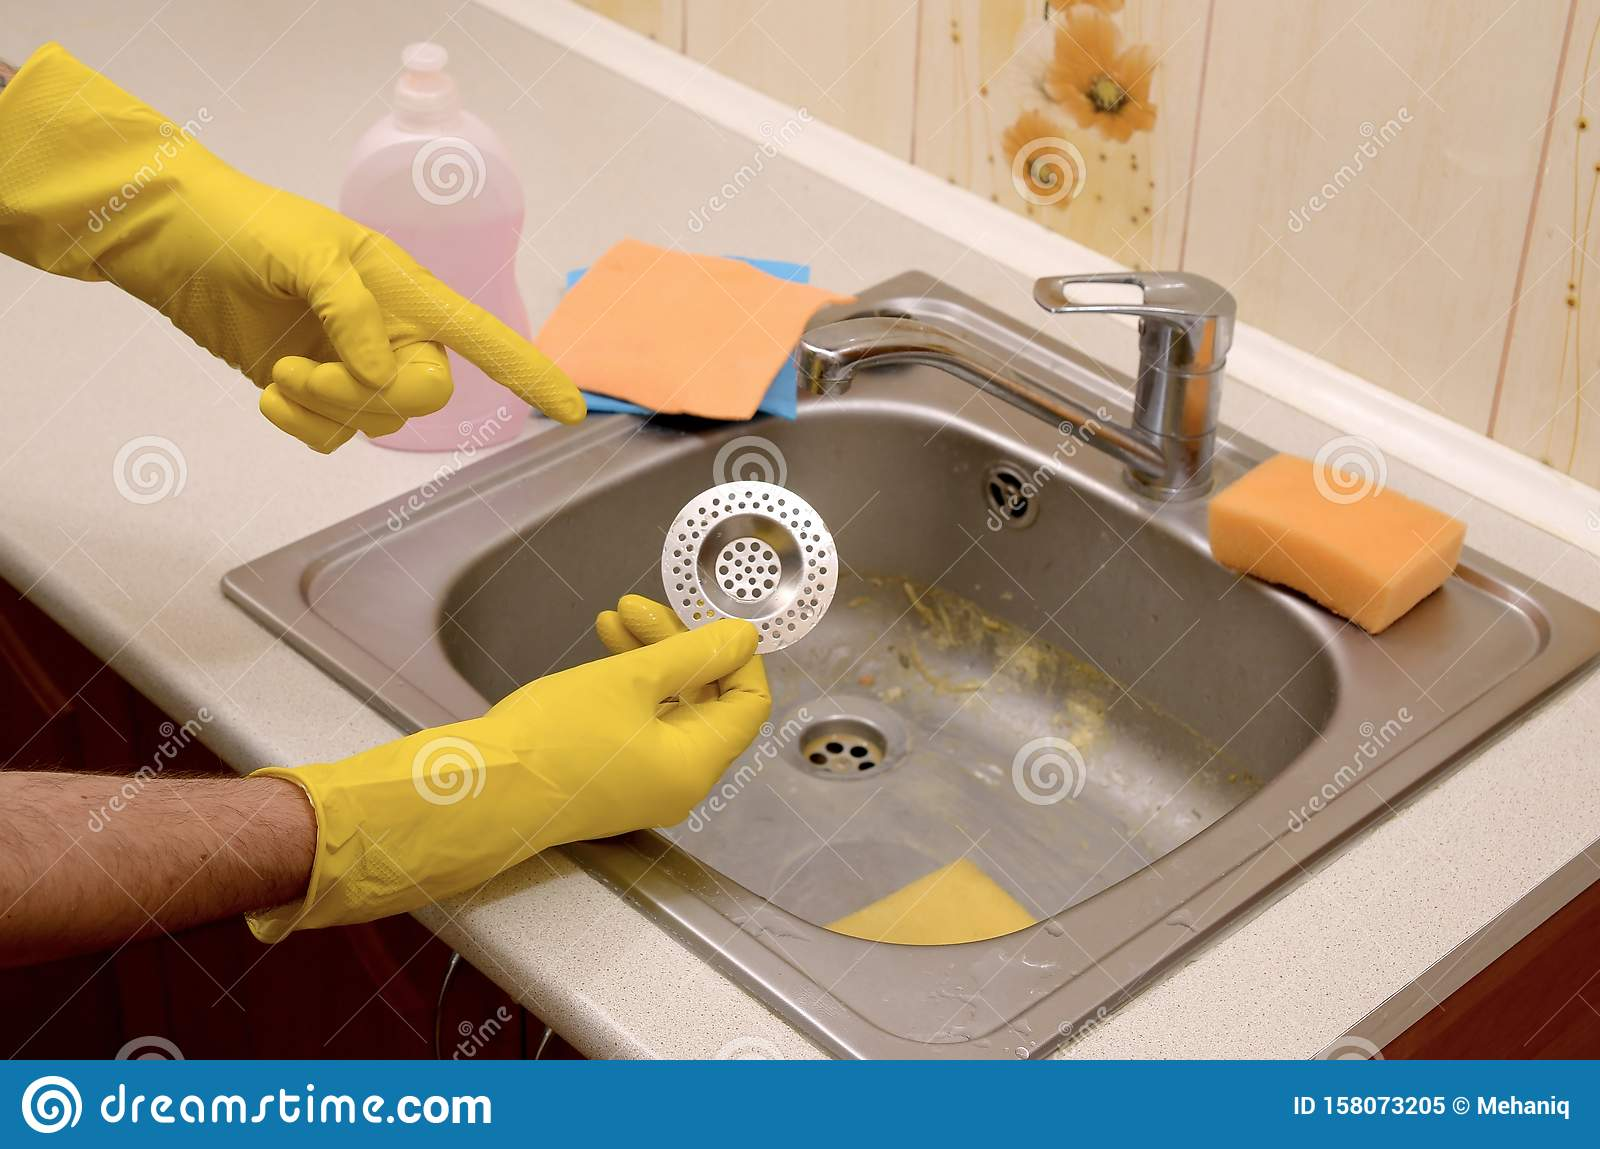 https www dreamstime com cleaner rubber gloves shows clean plughole protector kitchen sink cleaner rubber gloves shows clean plughole protector image158073205